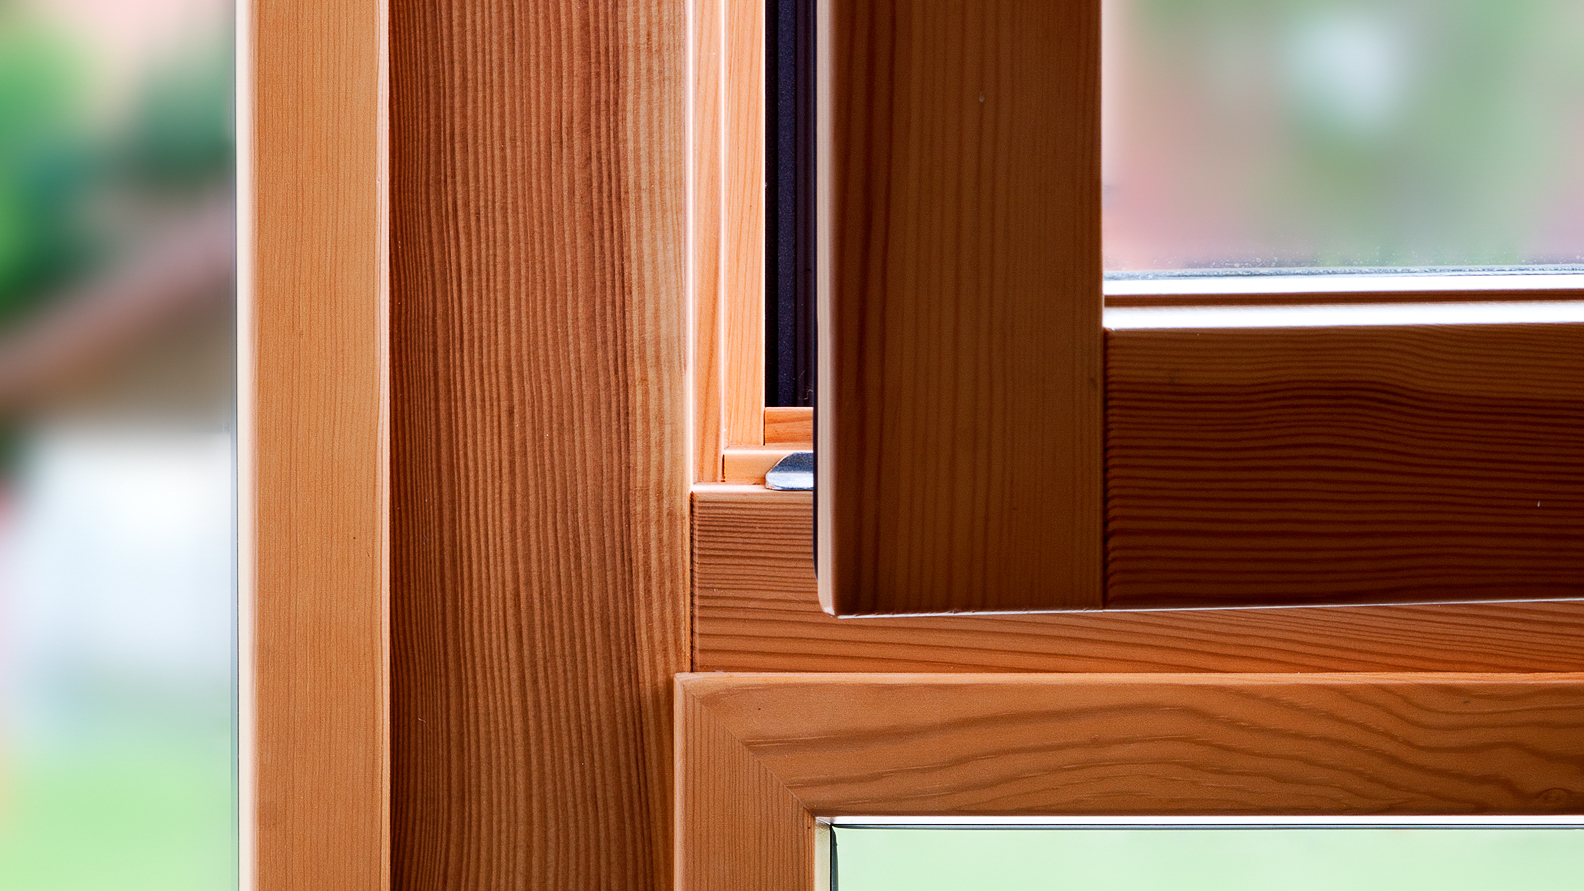 Wood Windows Harman Fensterbau, Importer of Fine European Windows and Doors